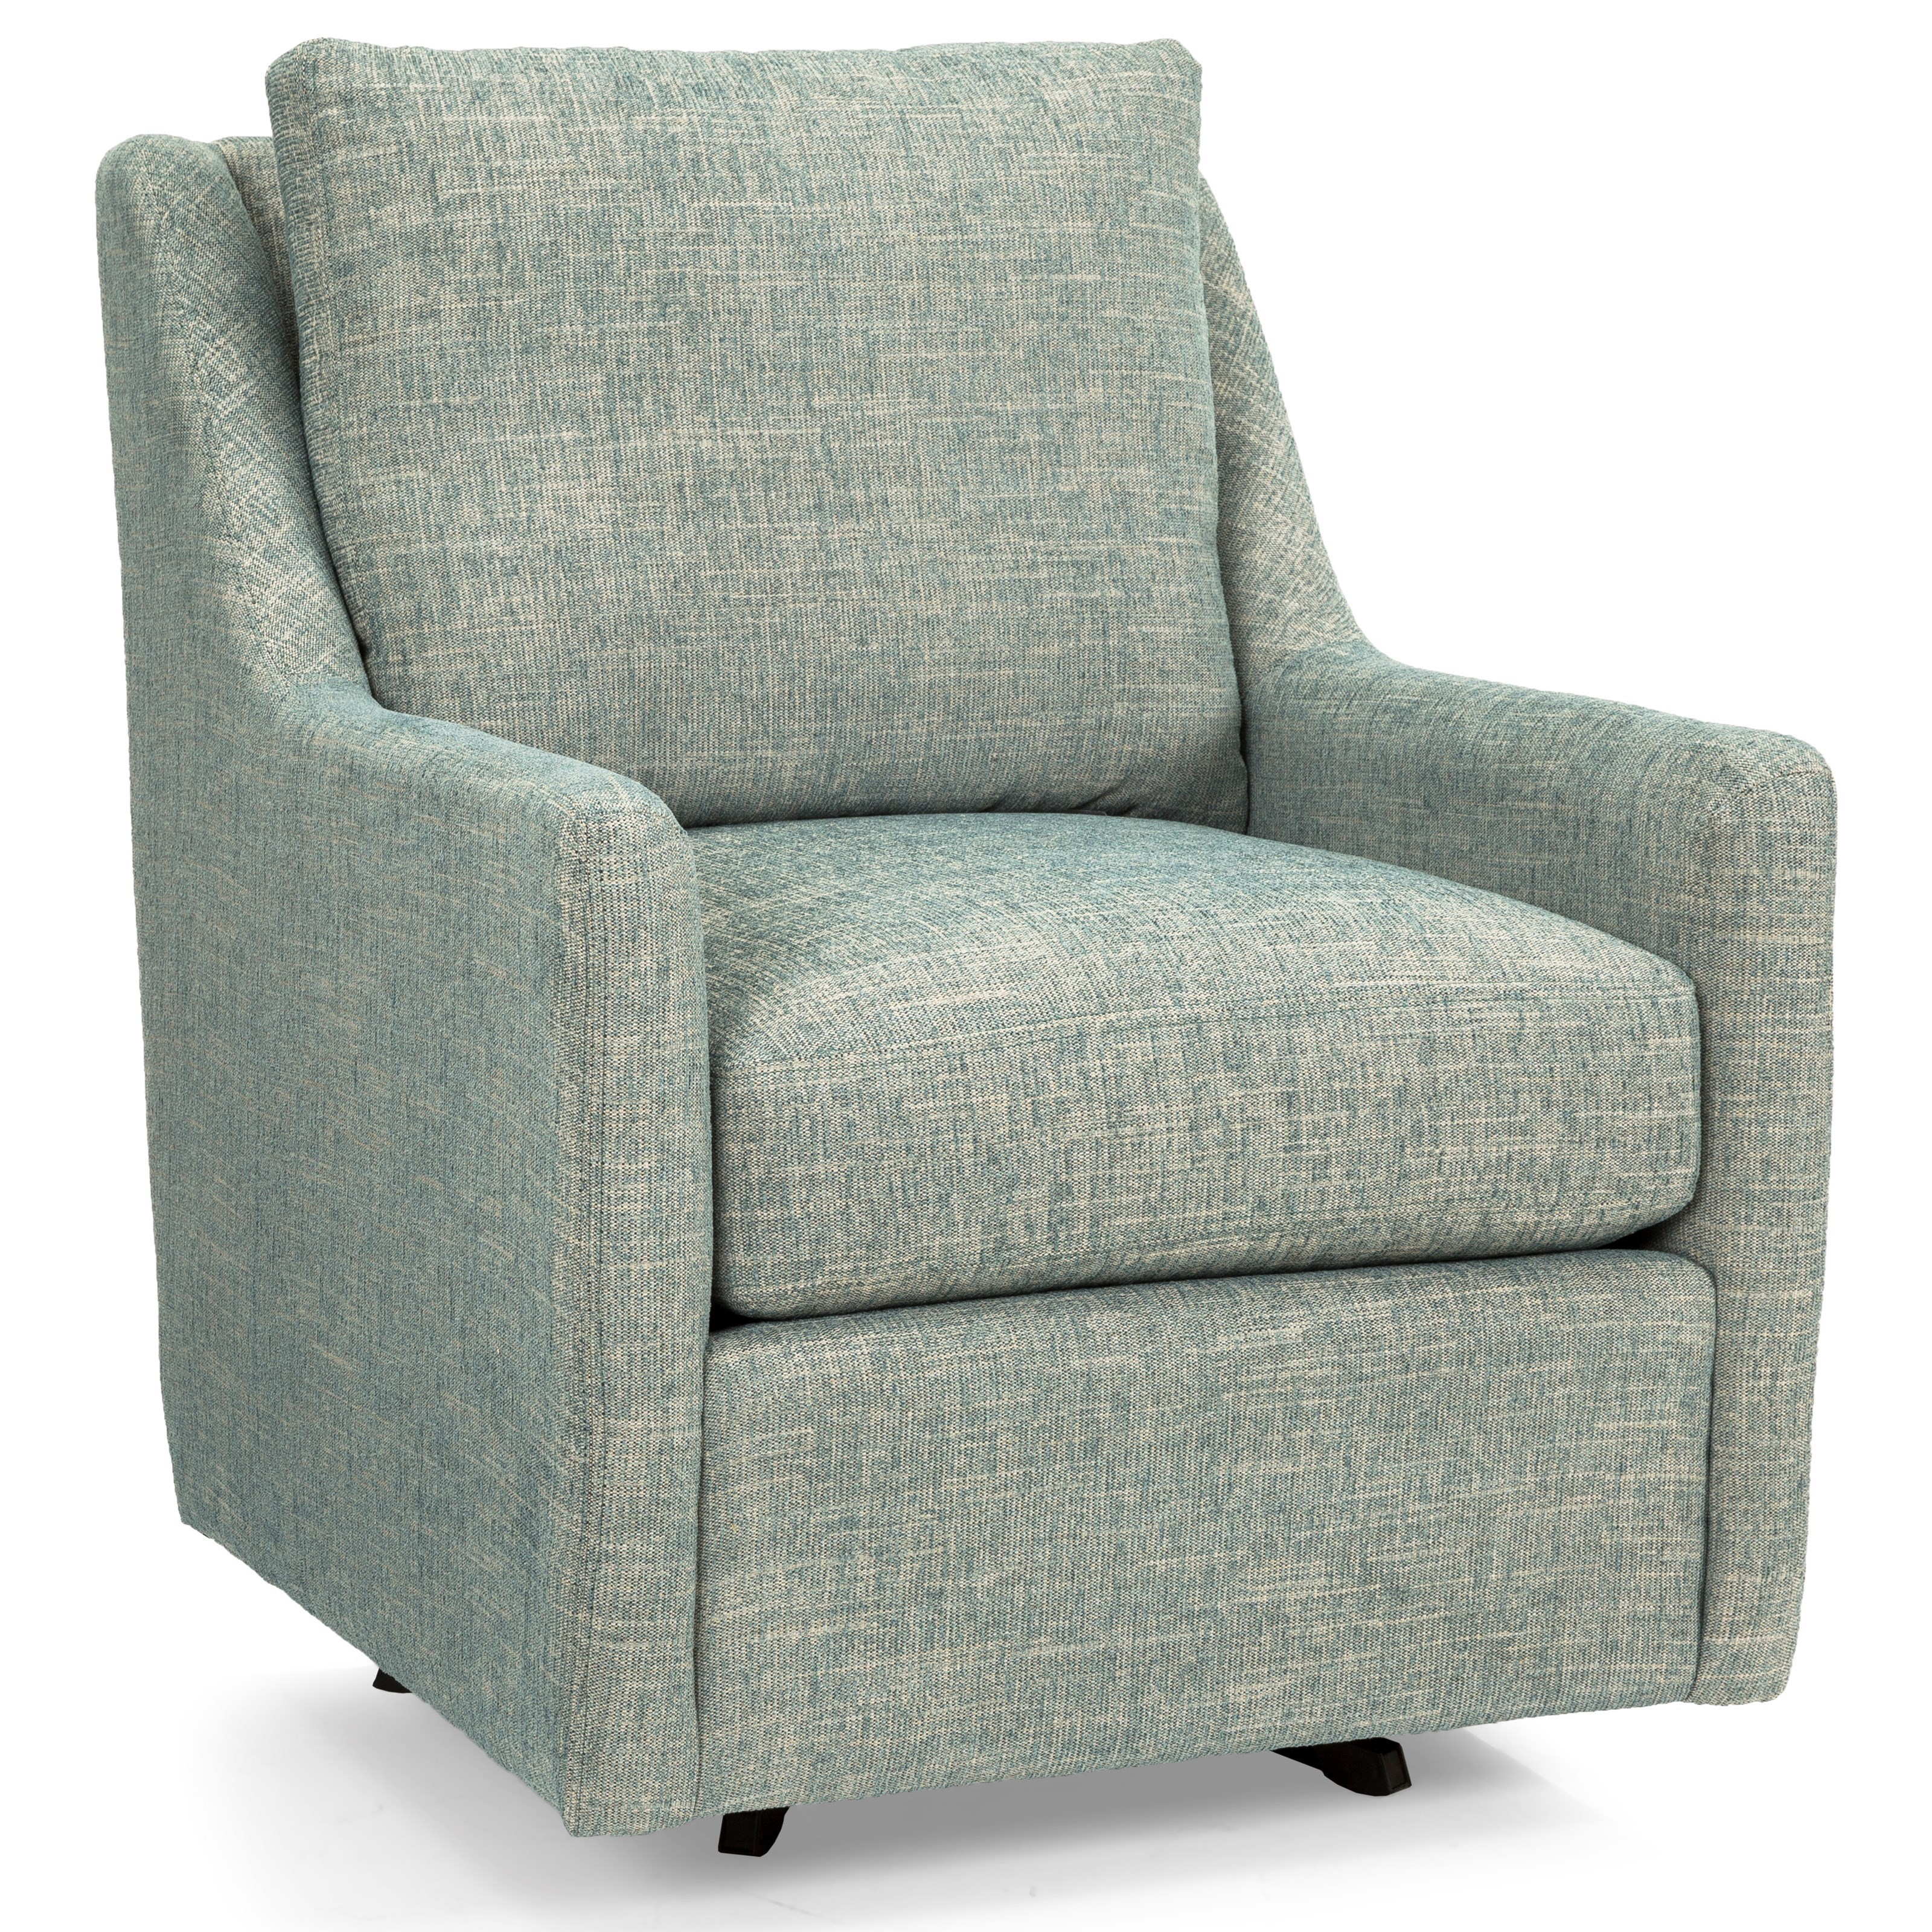 2627 Swivel Chair by Decor-Rest at Johnny Janosik